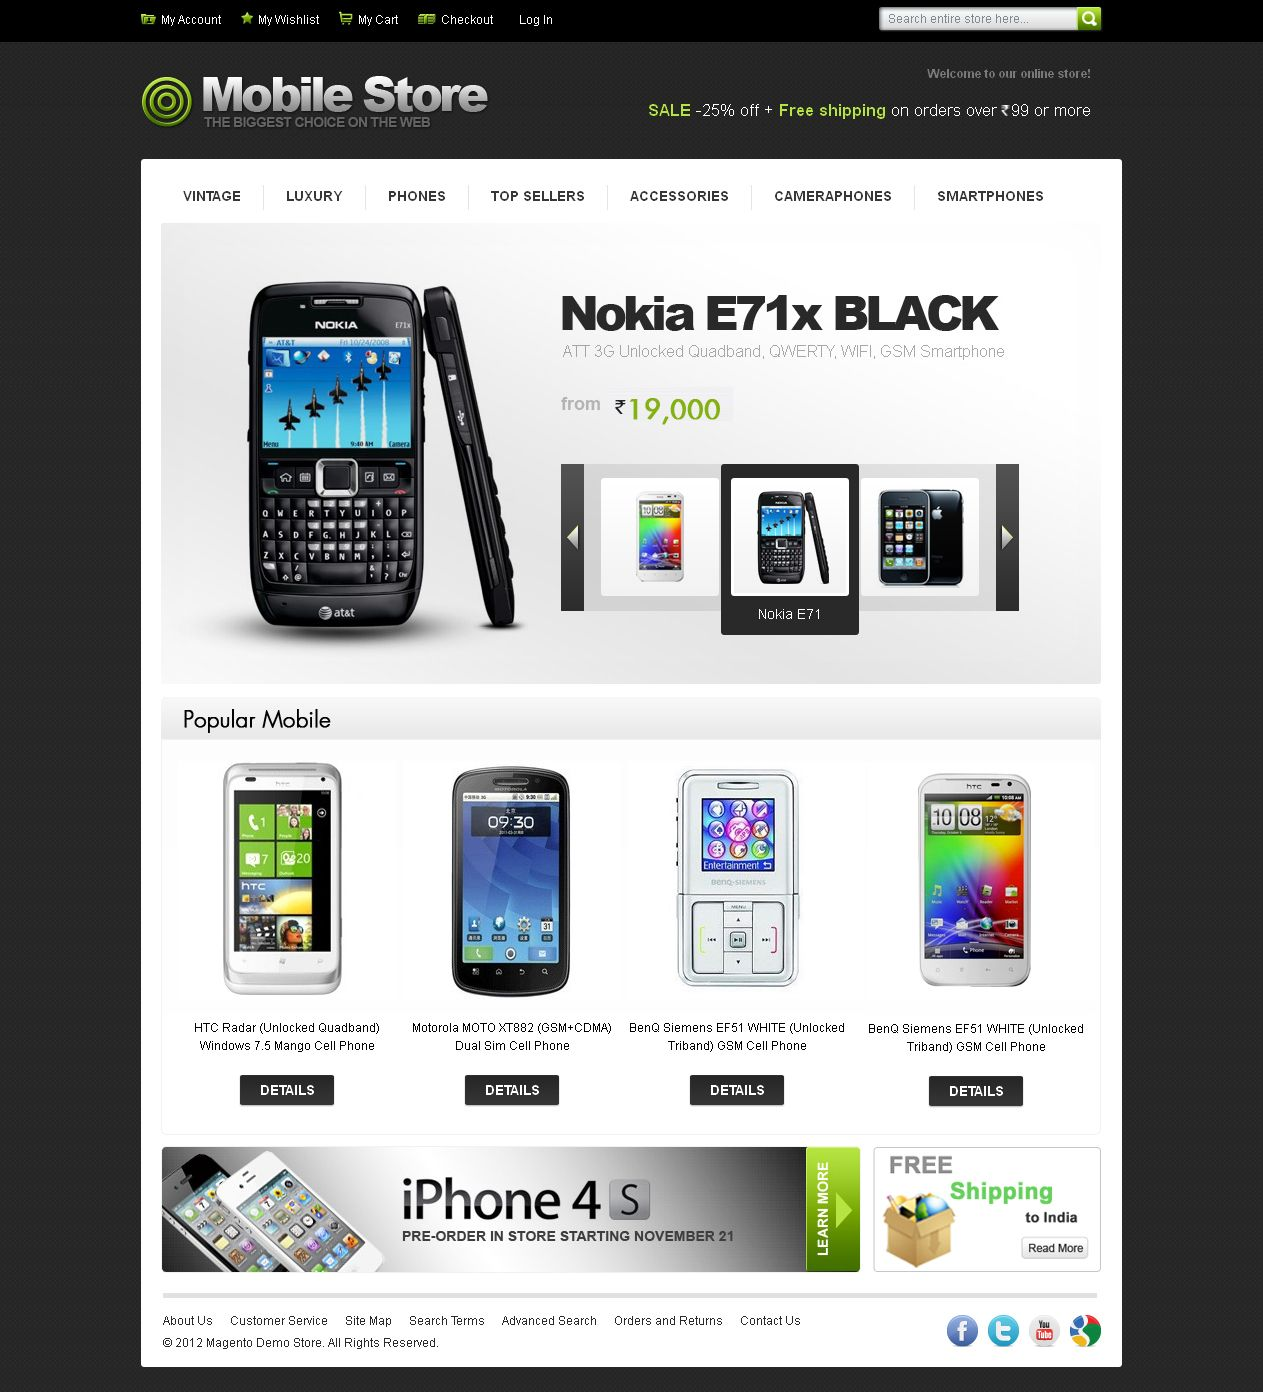 Mobile Store Theme: Like it ? To create your own estore, log on to www.buildabazaar.com